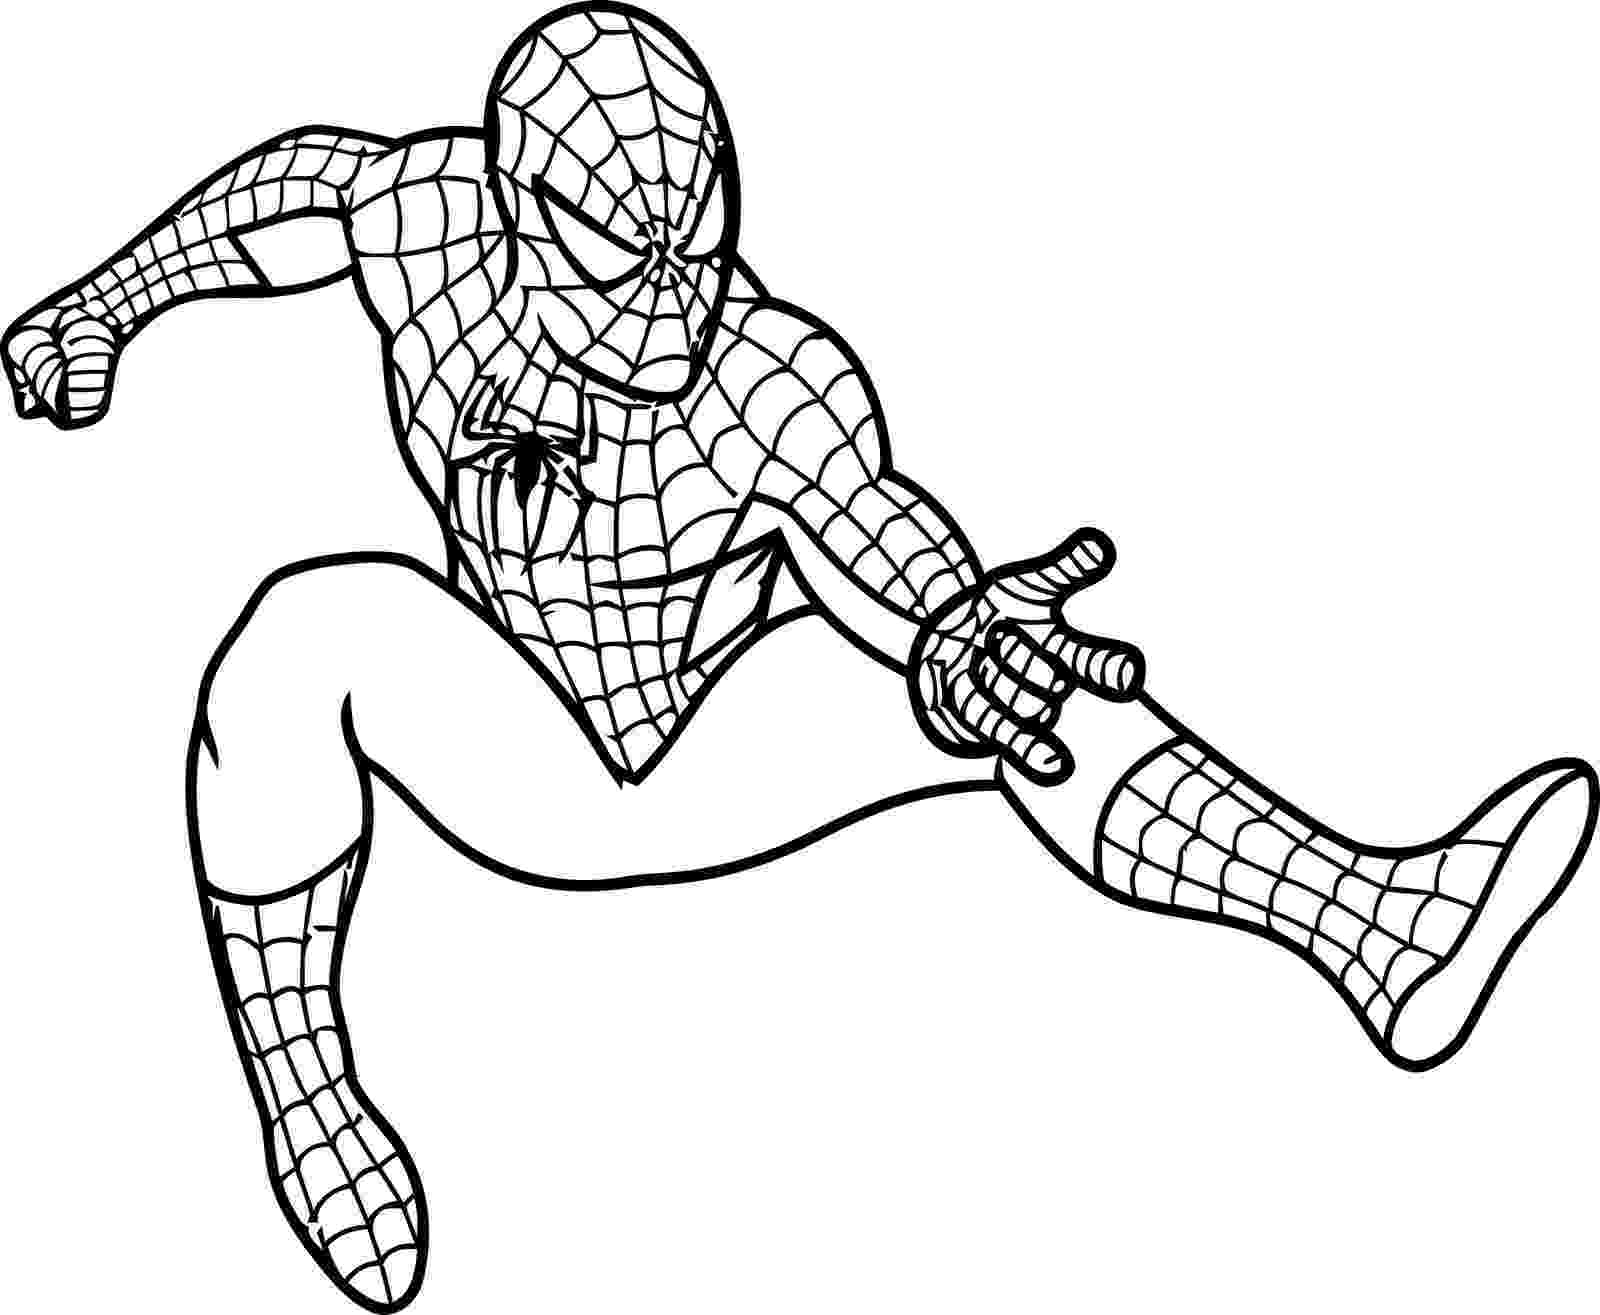 spiderman printout spiderman coloring page for kids to print spiderman spiderman printout